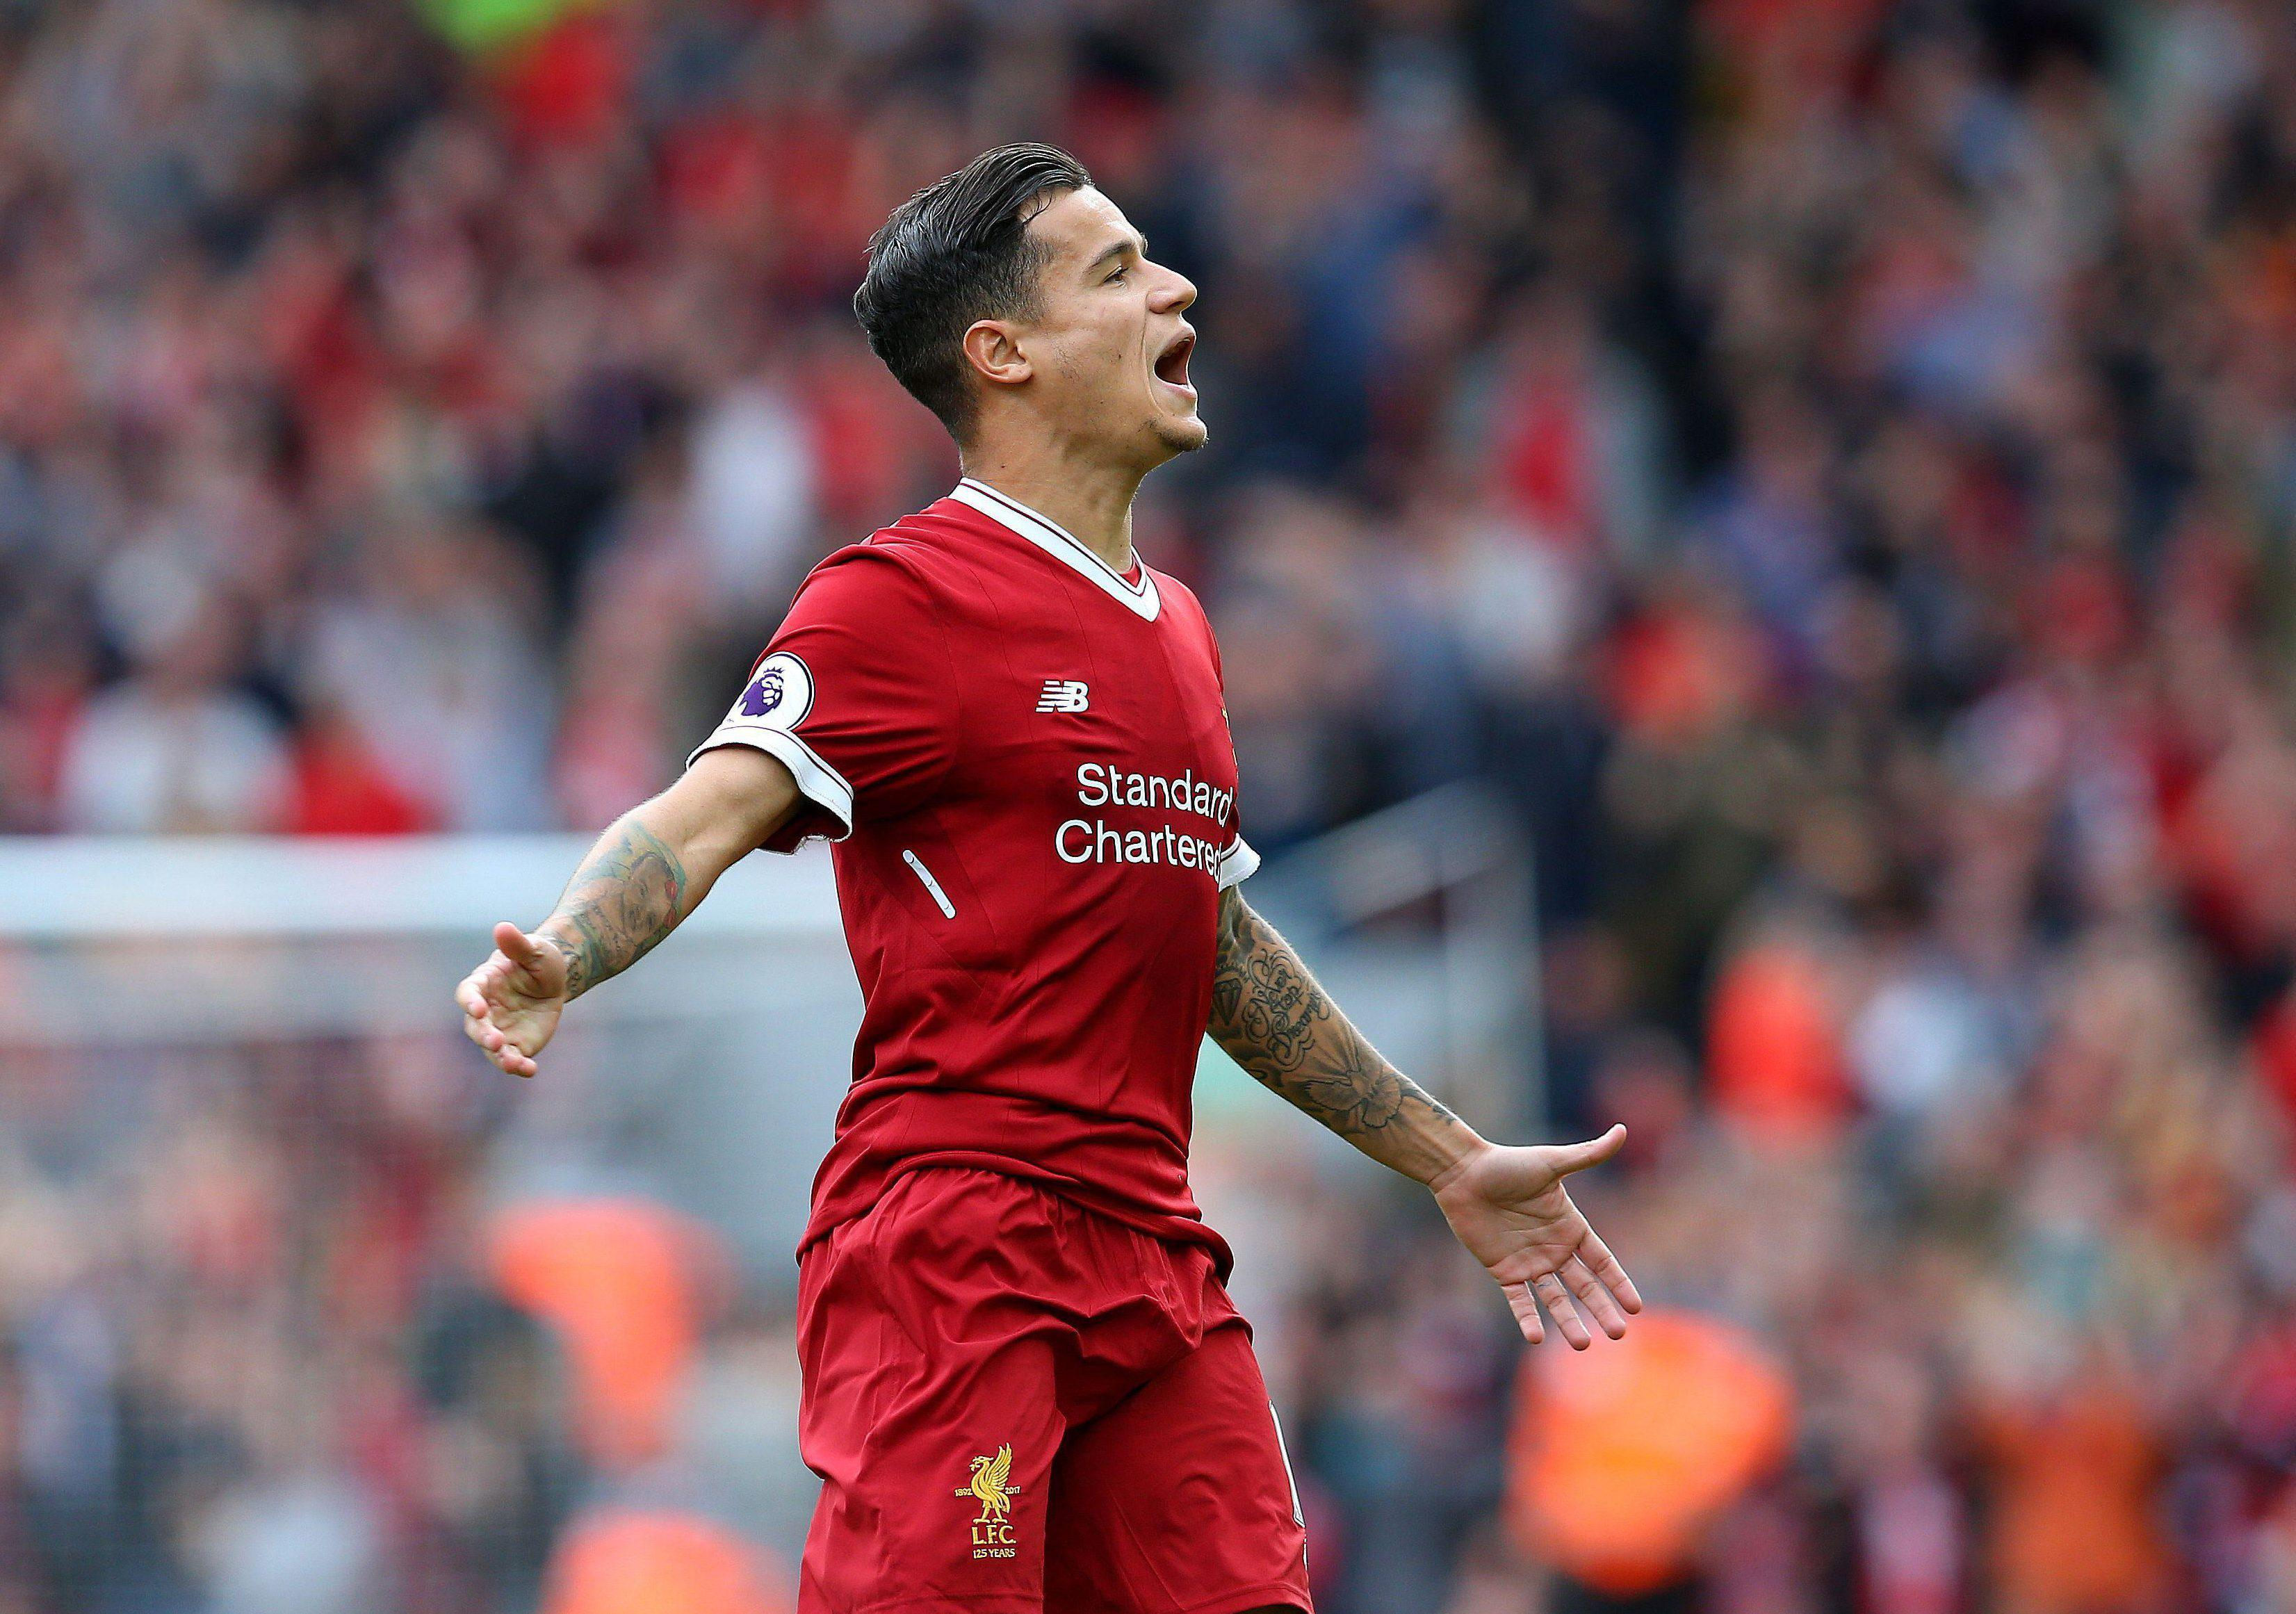 Philippe Coutinho scored 14 goals this season in his best return